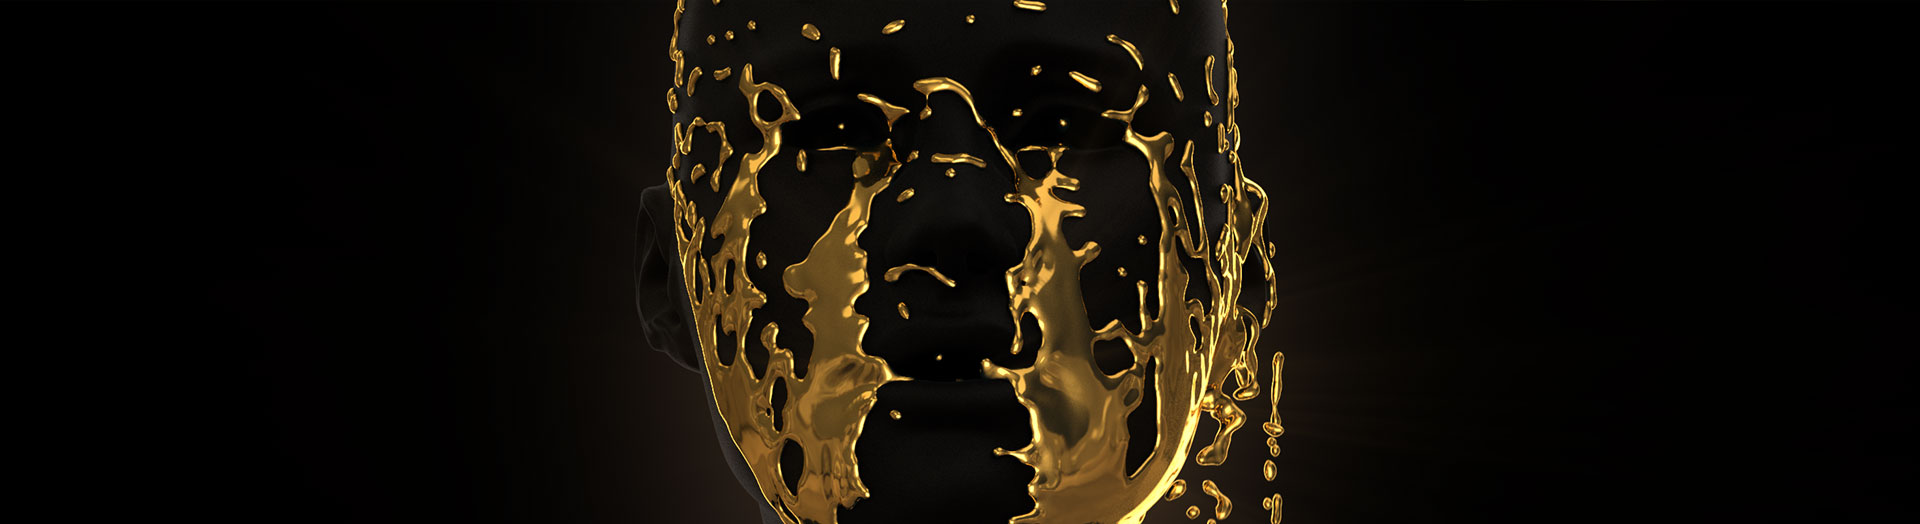 Still frame - Wonder of Gold Exhibition - 3D Fluid Simulation Melbourne based Reel Pictures